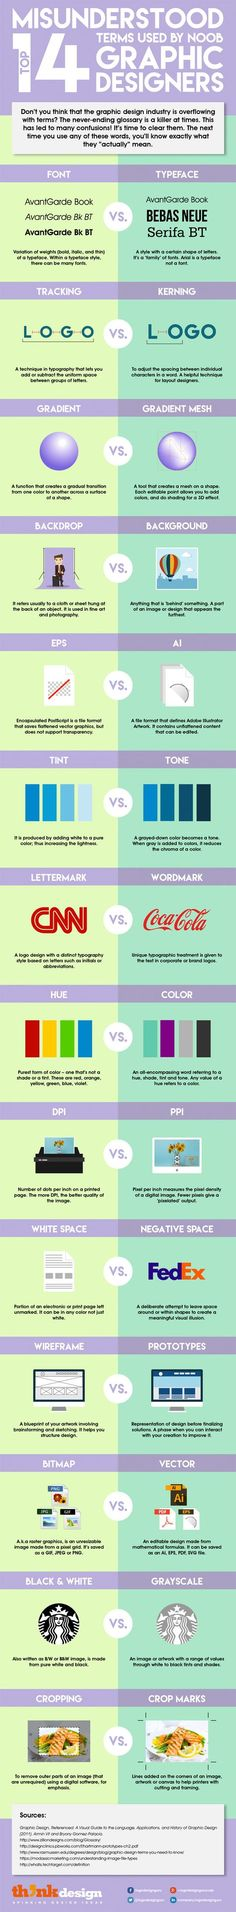 Top 14 Misunderstood Terms Used by Noob Graphic Designers. It's really hard explaining this to clients